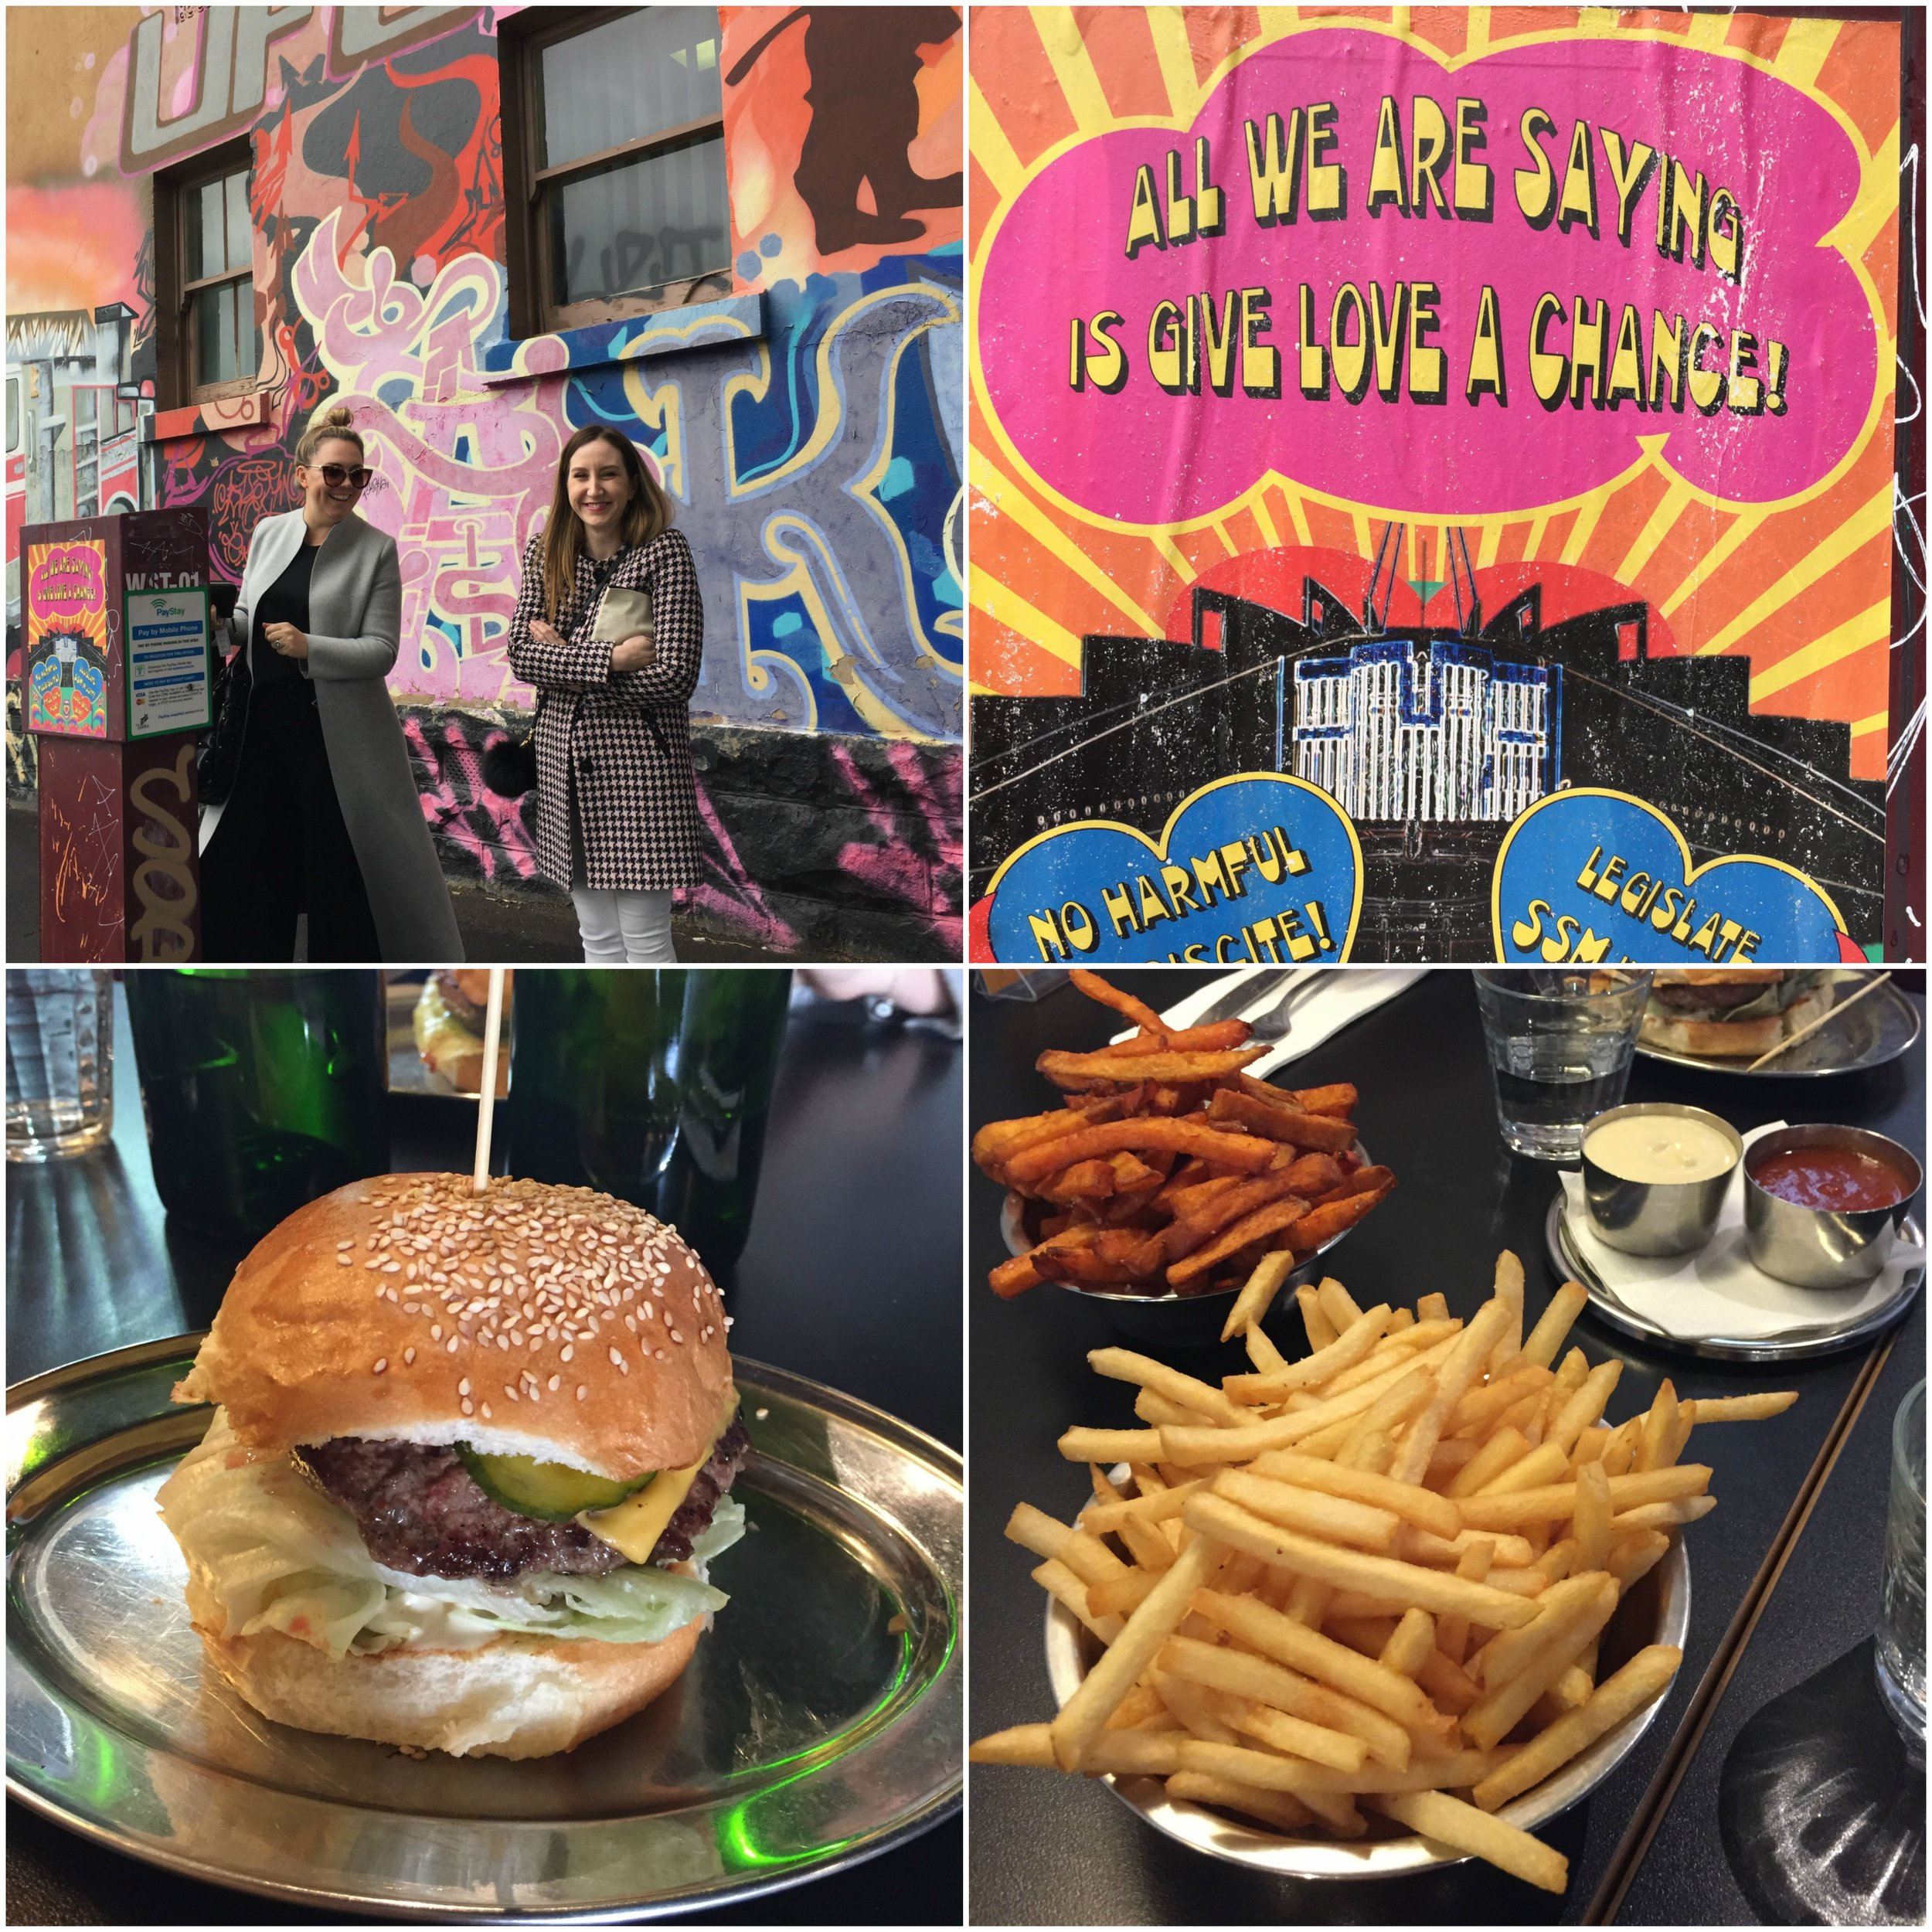 We said good bye to colourful Melbourne . . . But before we hit the road for the Yarra Valley we made a quick stop in Fitzroy to enjoy a very satisfying burger at 'Brother Burger'.